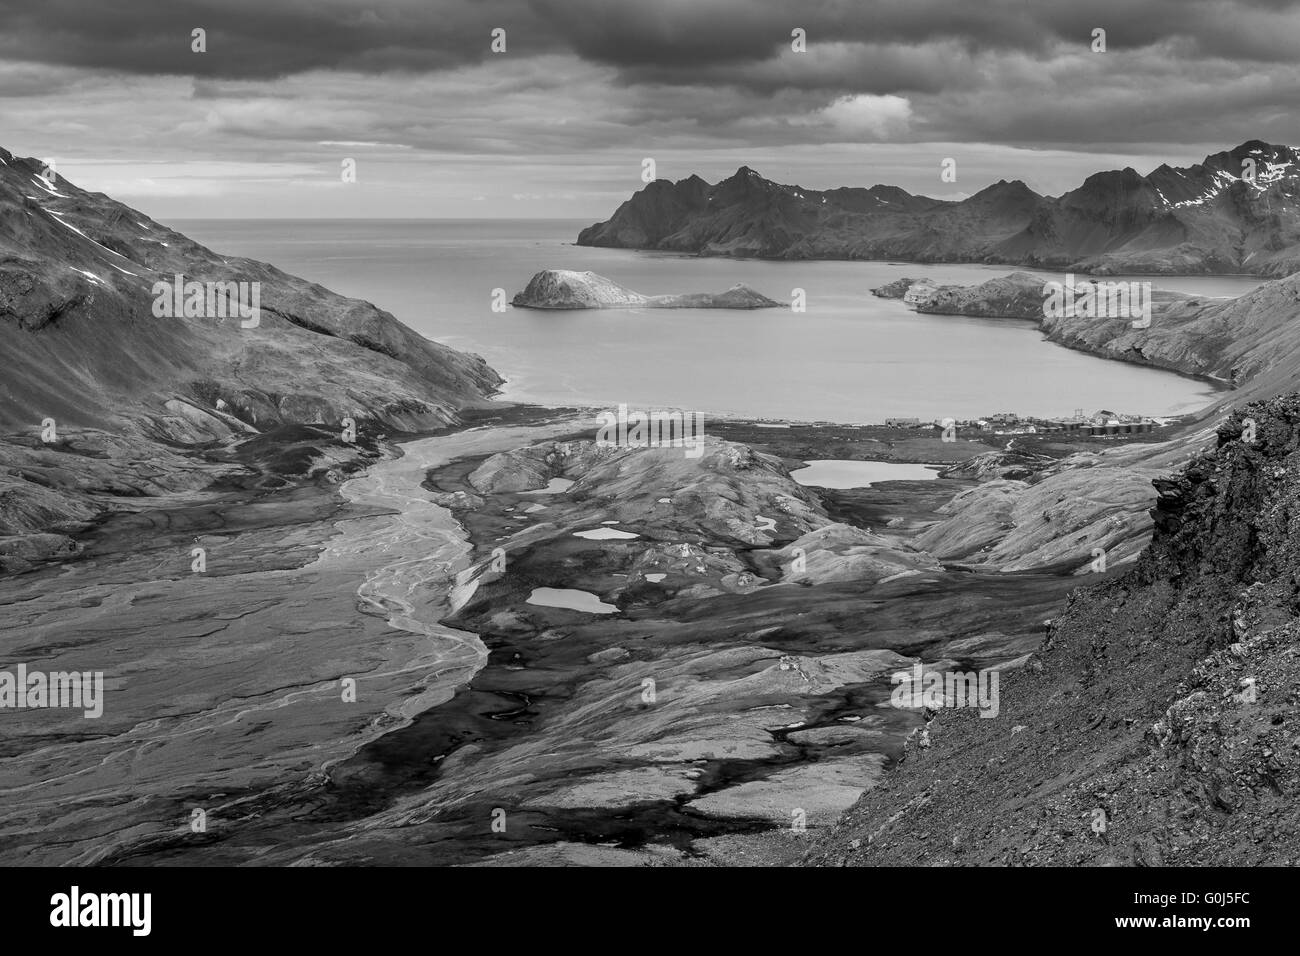 Landscape view of alluvial valley and Stromness whaling station, South Georgia in December 2013. - Stock Image